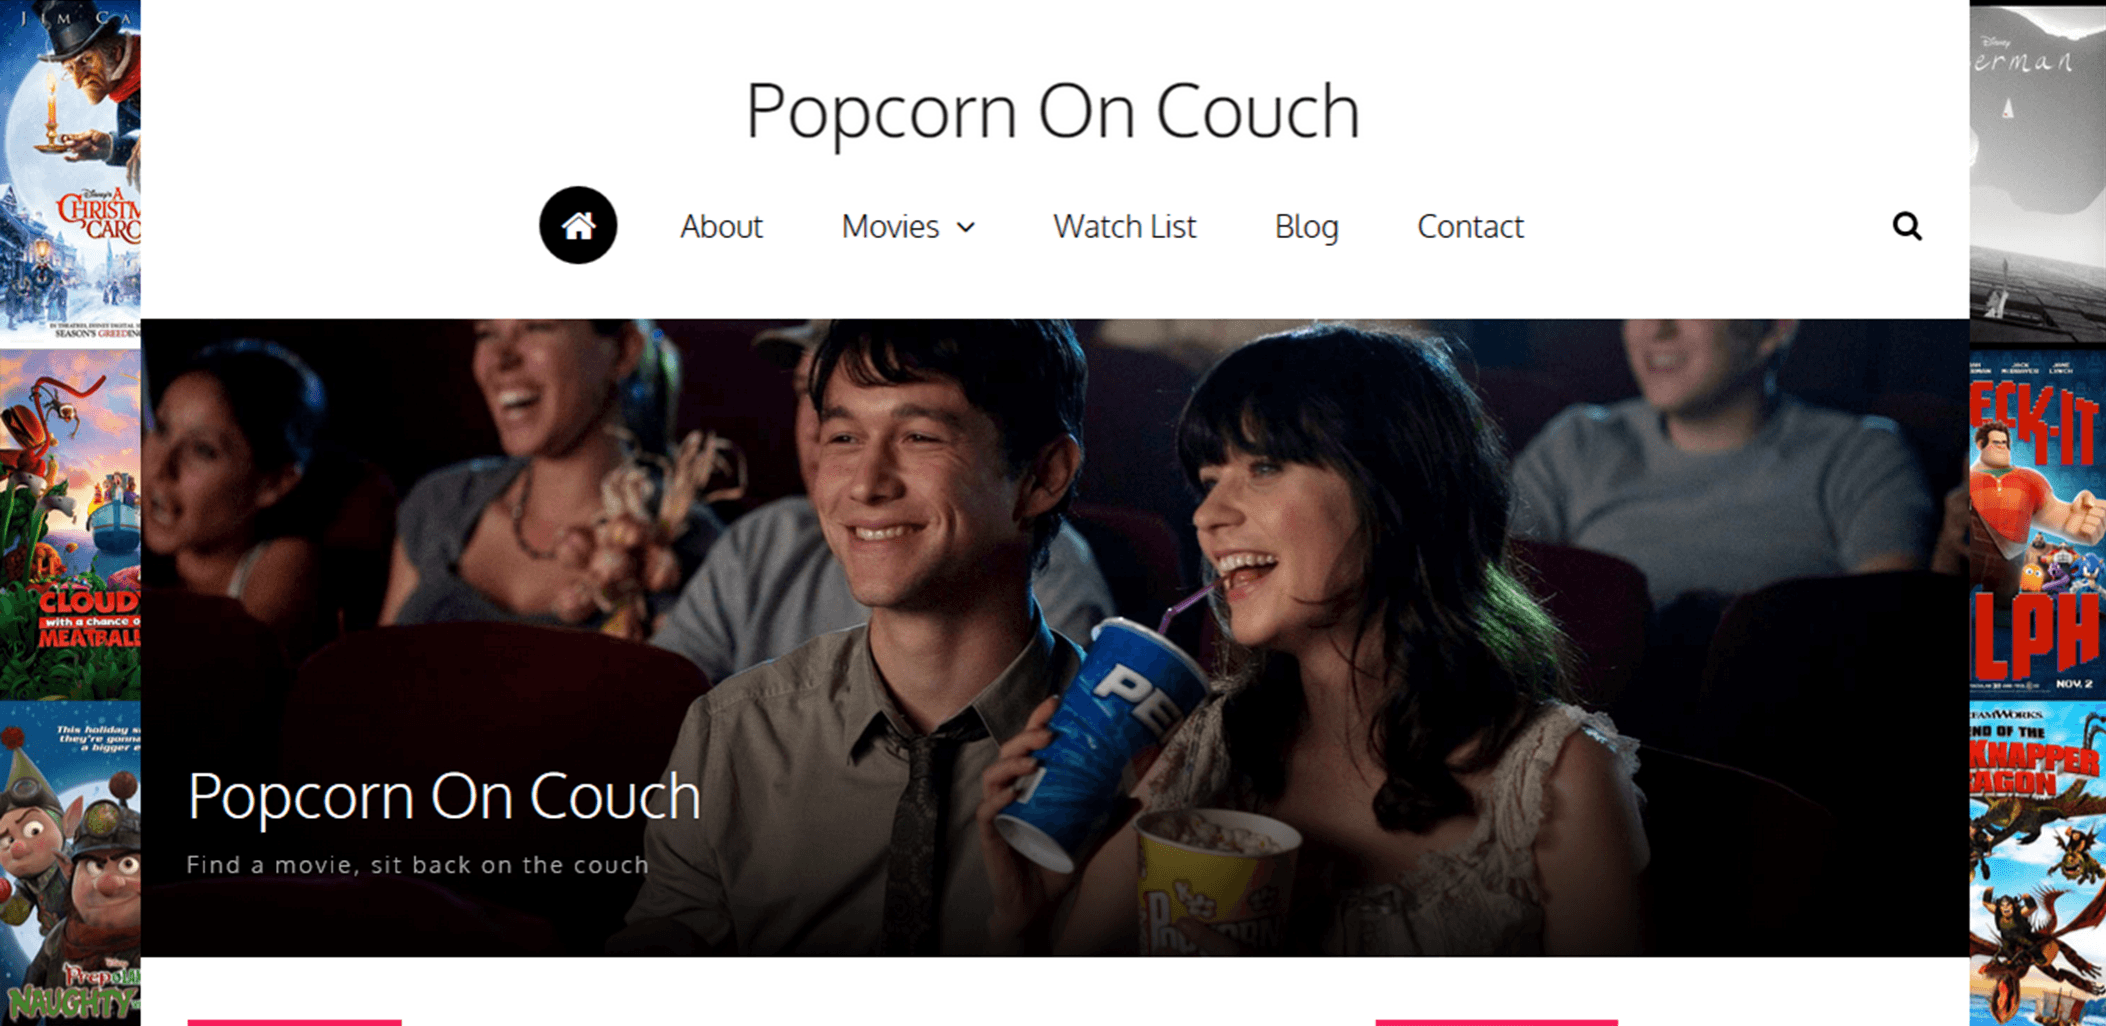 Popcorn On Couch Home page